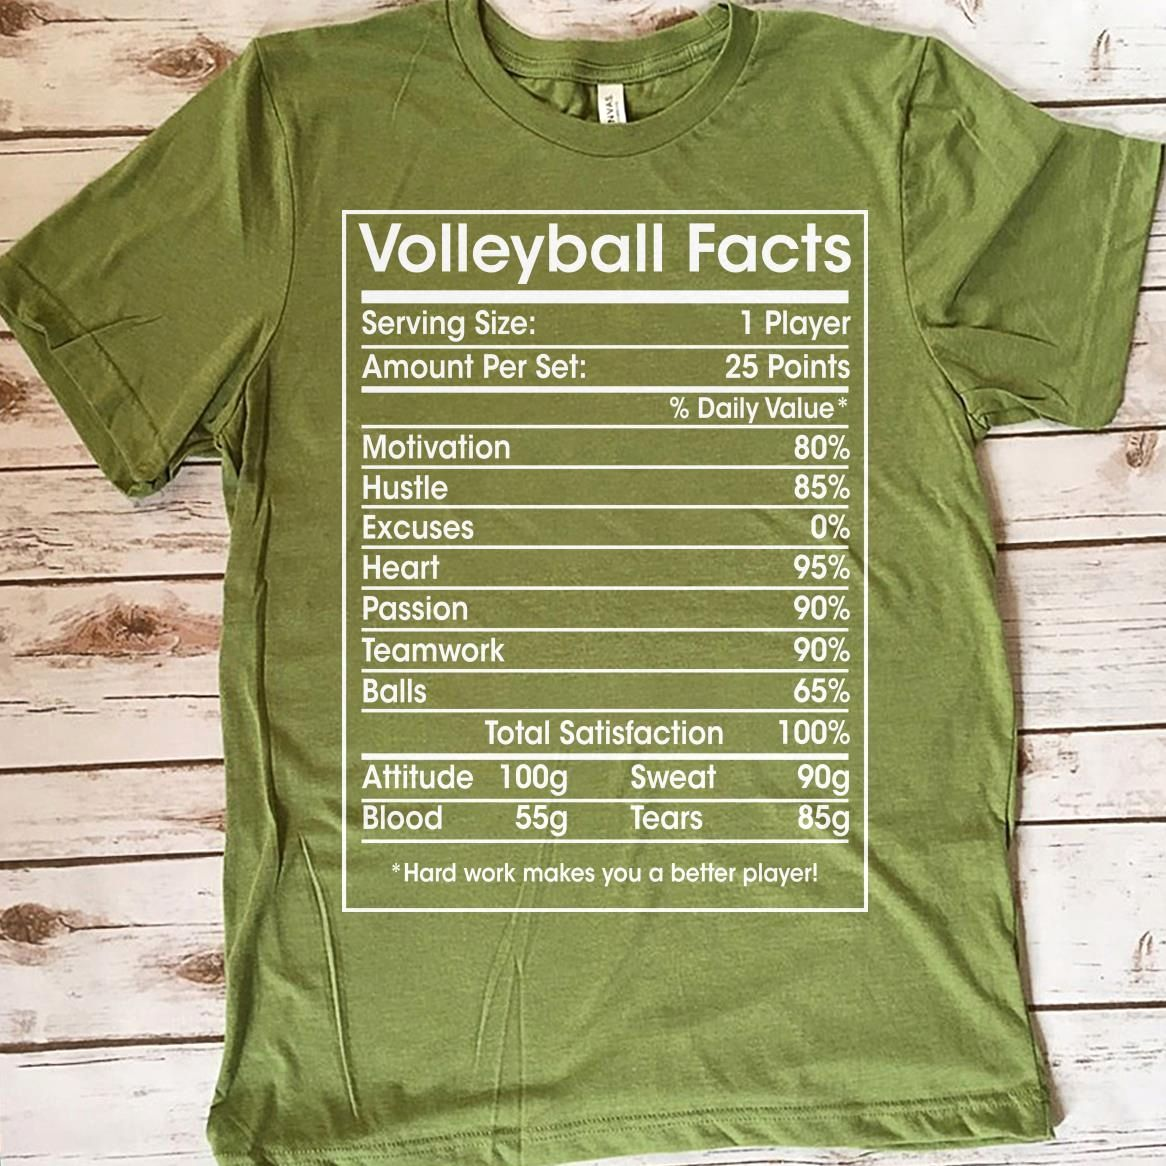 Volleyball Facts Great Volleyball T Shirt Mug Bag Gift For Family Friends Volleyball Players Volleyball Volleyball Facts Volleyball Tshirts Golden Retriever